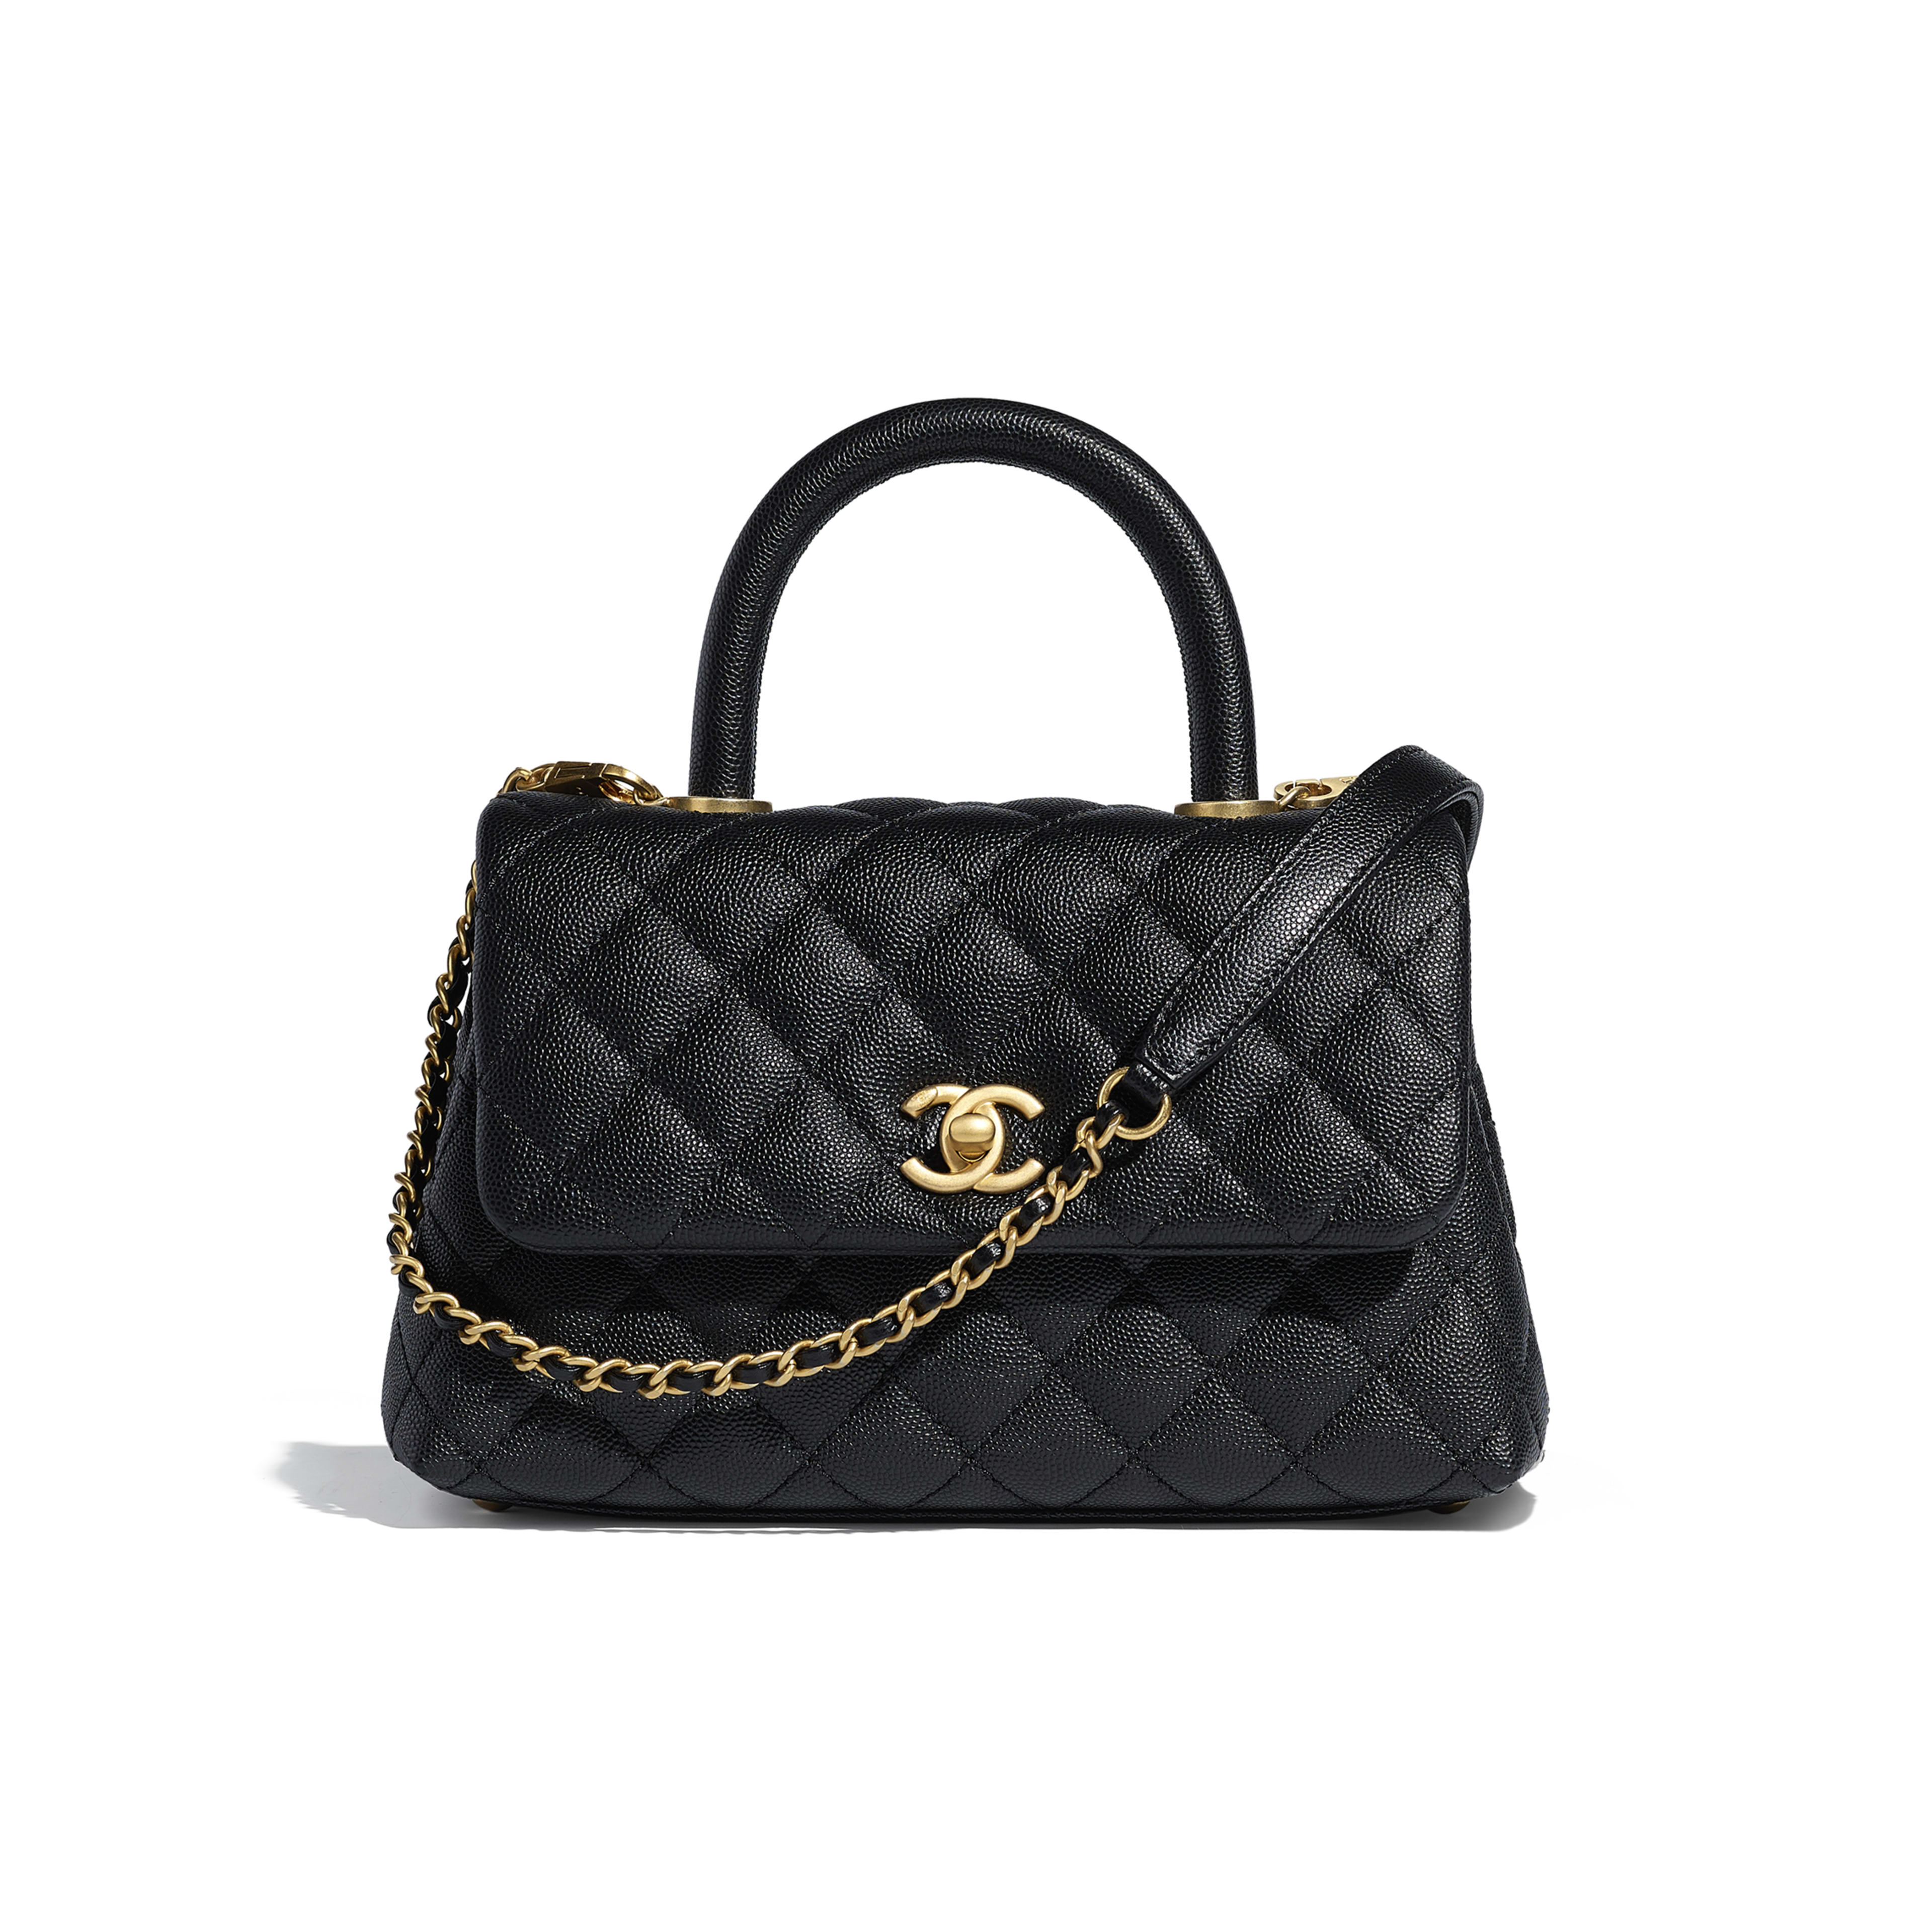 Small Flap Bag with Top Handle - Black - Grained Calfskin & Gold-Tone Metal - Default view - see full sized version